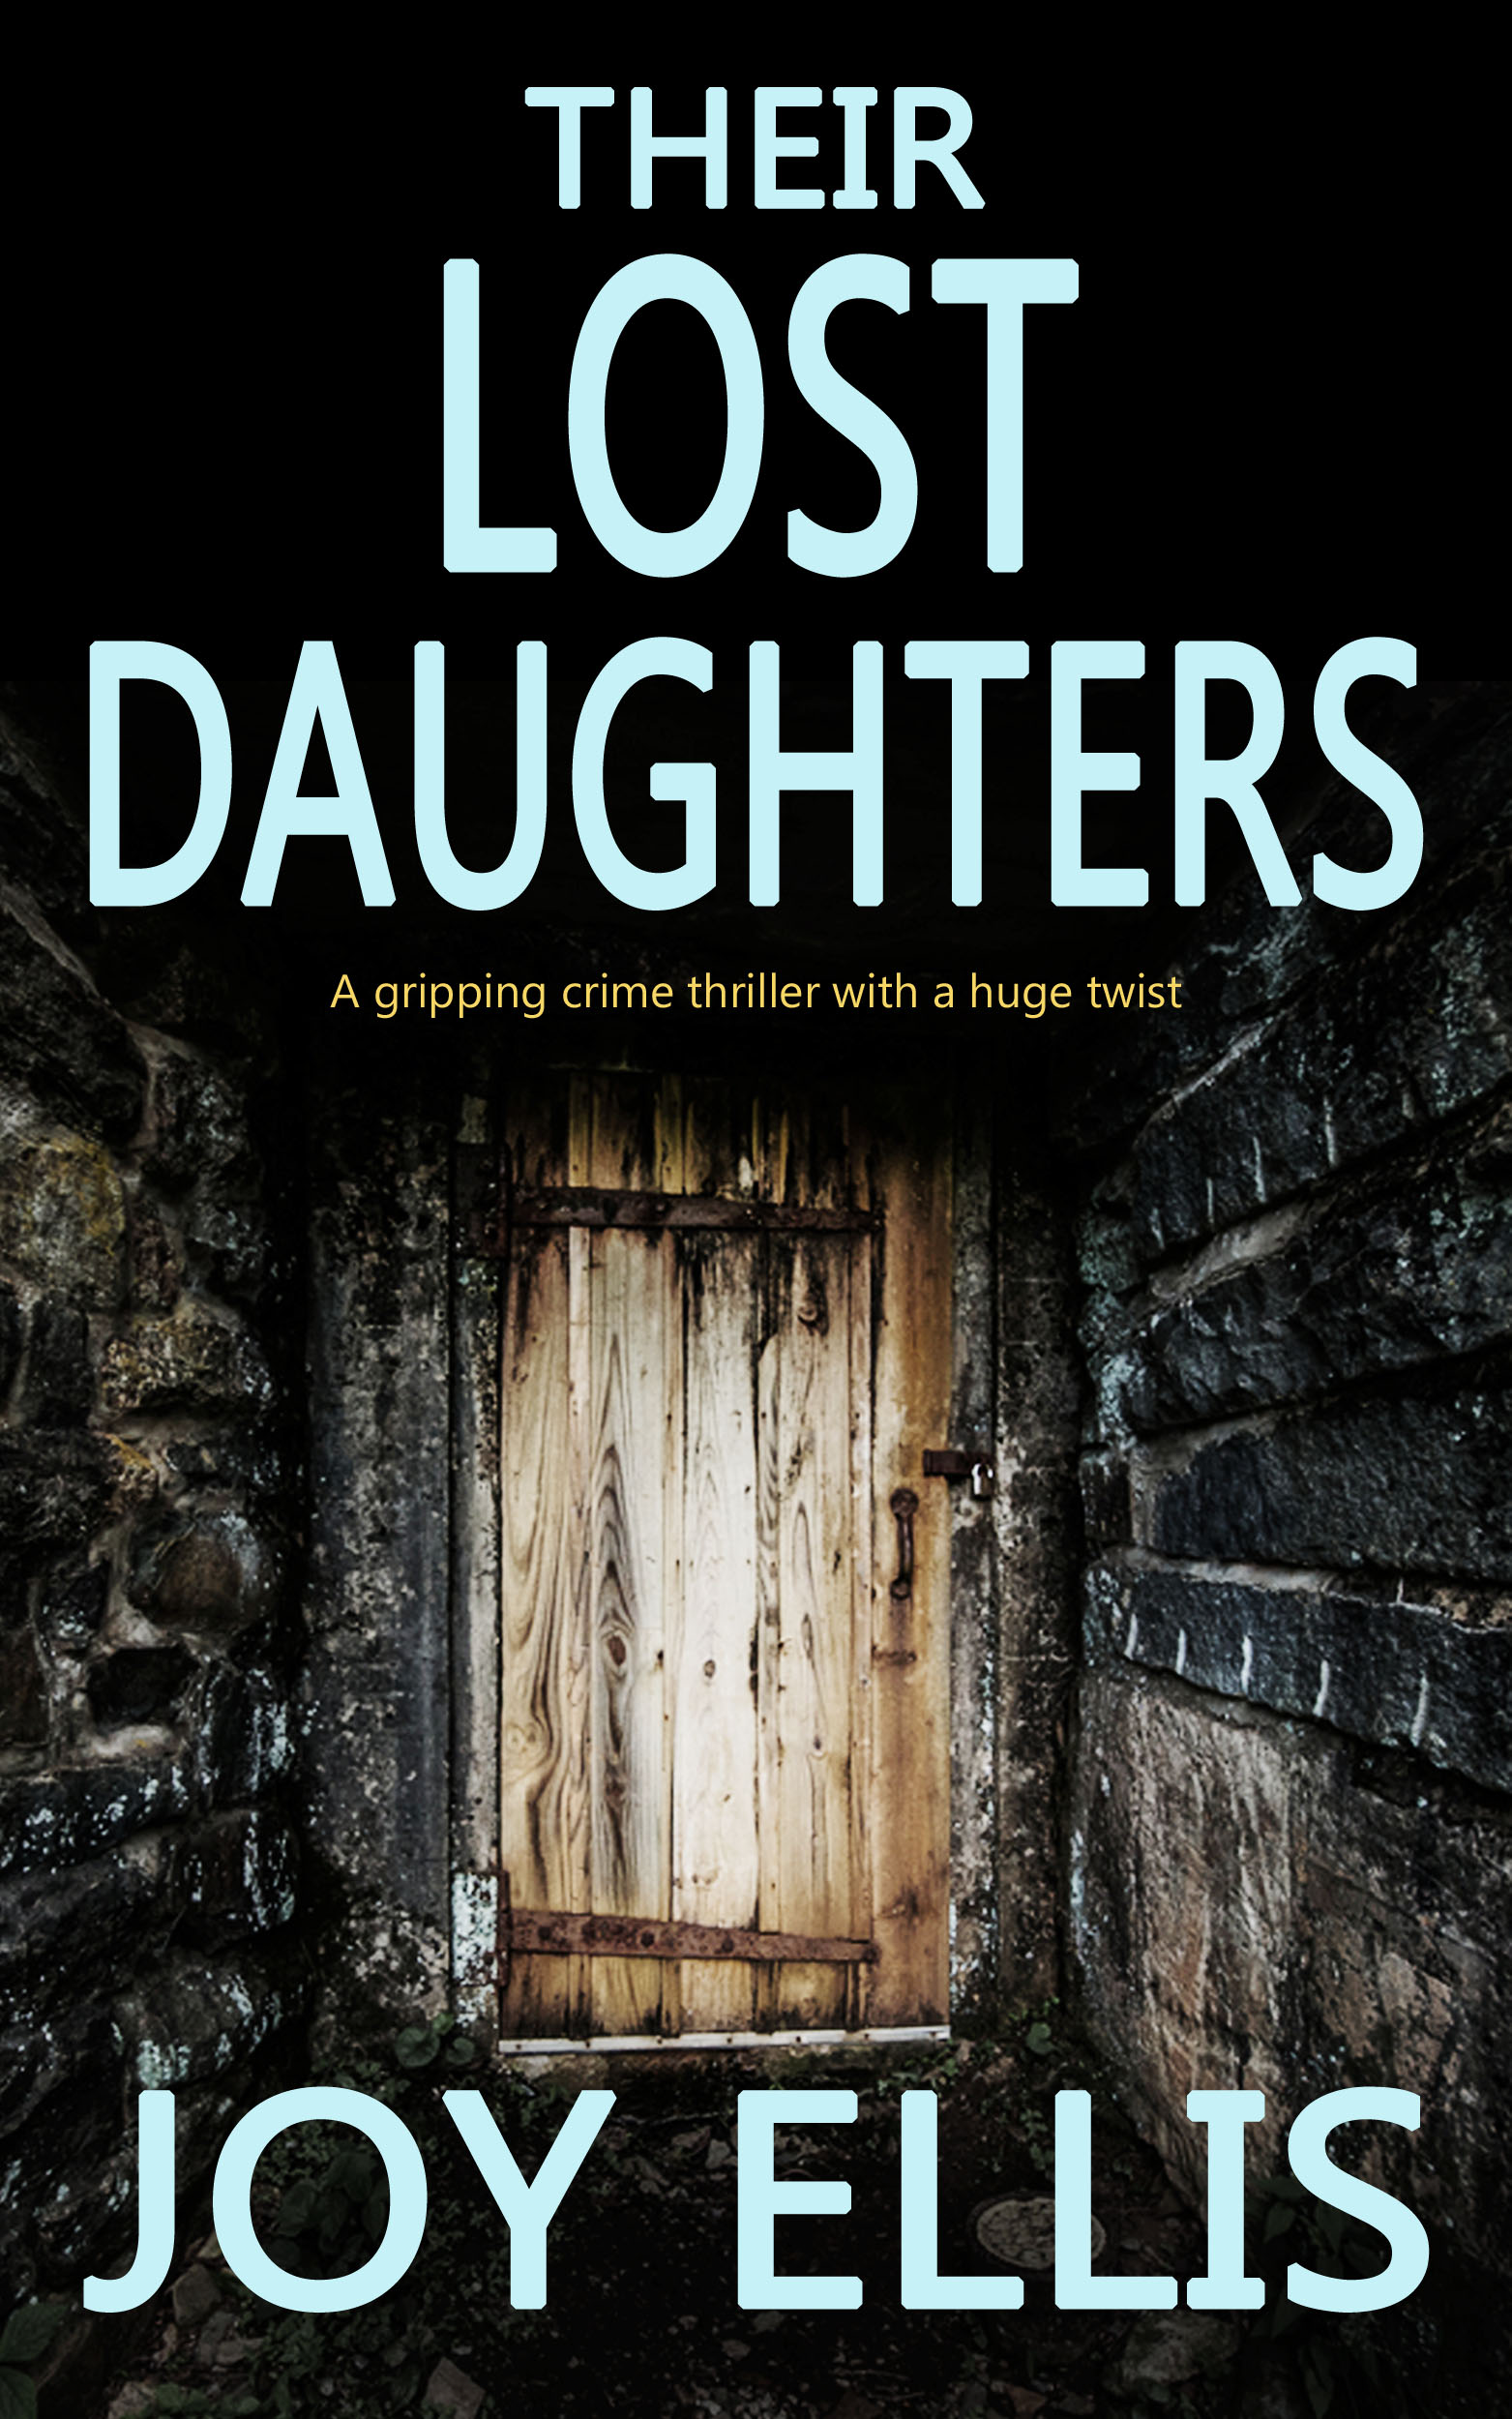 THEIR LOST DAUGHTERS USA.jpg